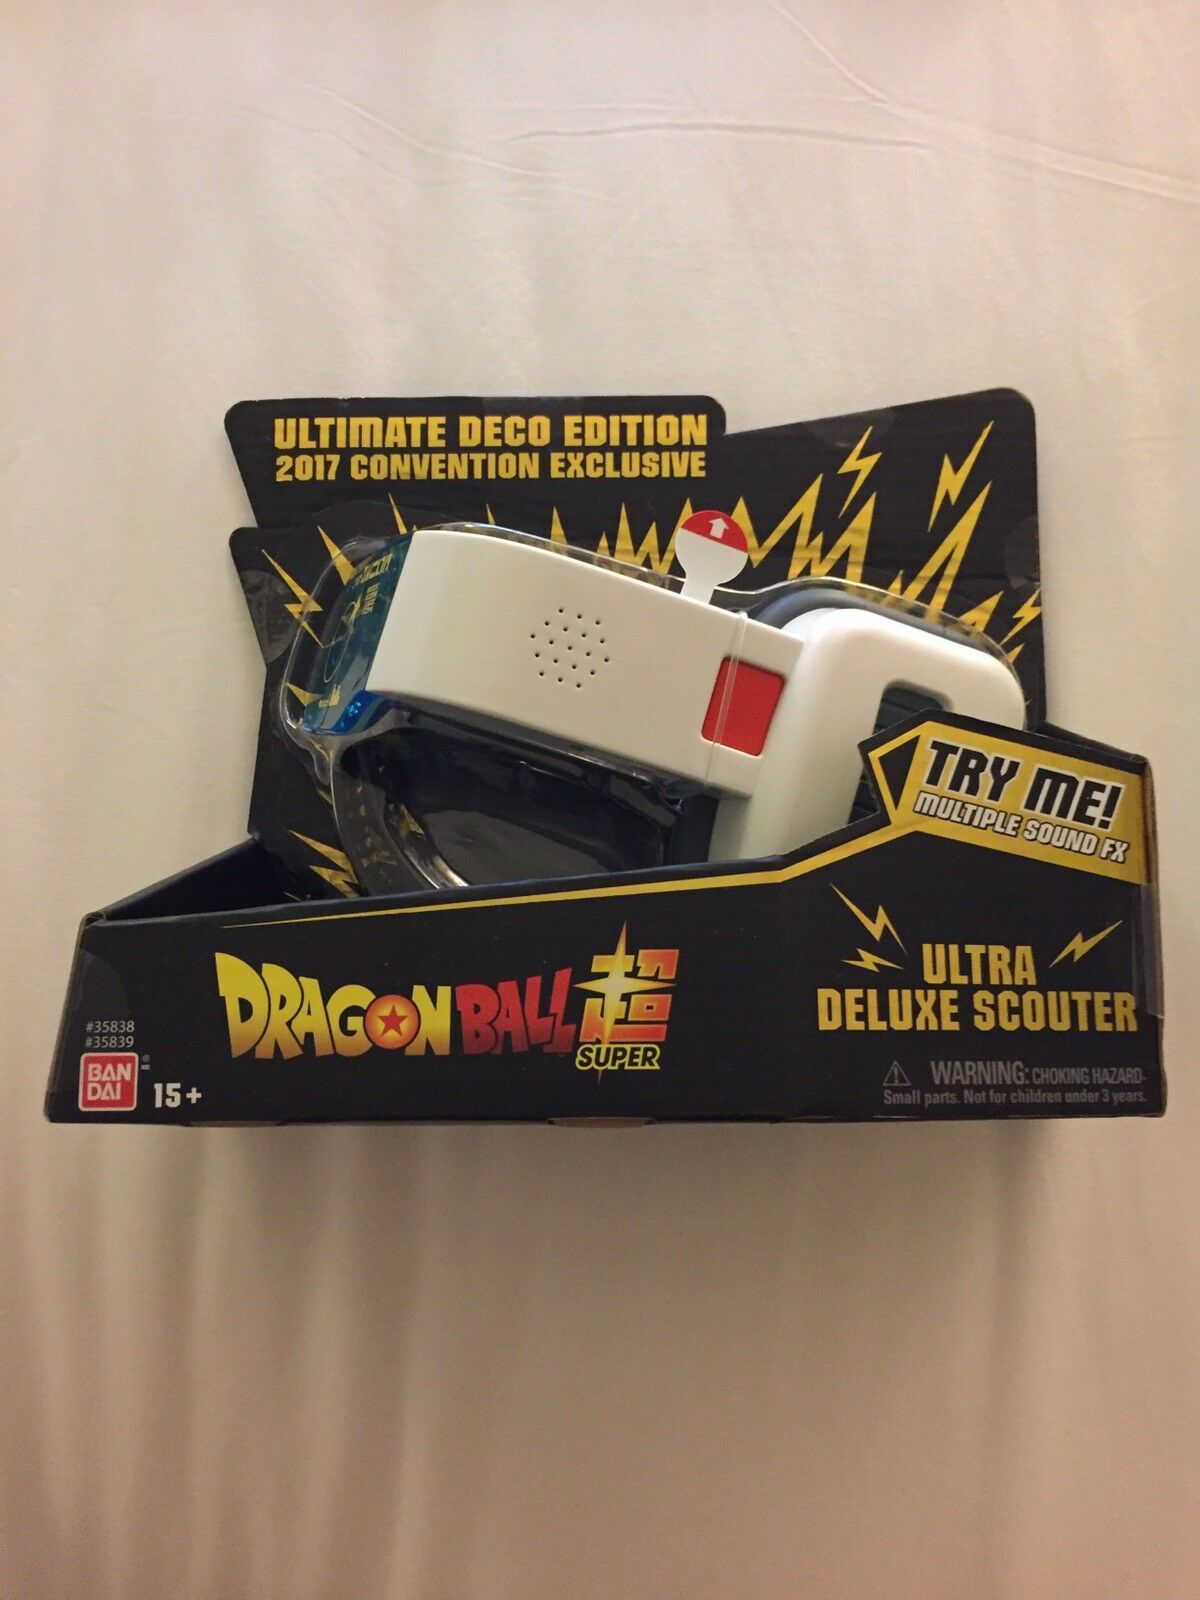 SDCC 2017 Exclusive Dragon Ball Super Ultra Deluxe Scouter Ultimate Deco Edition